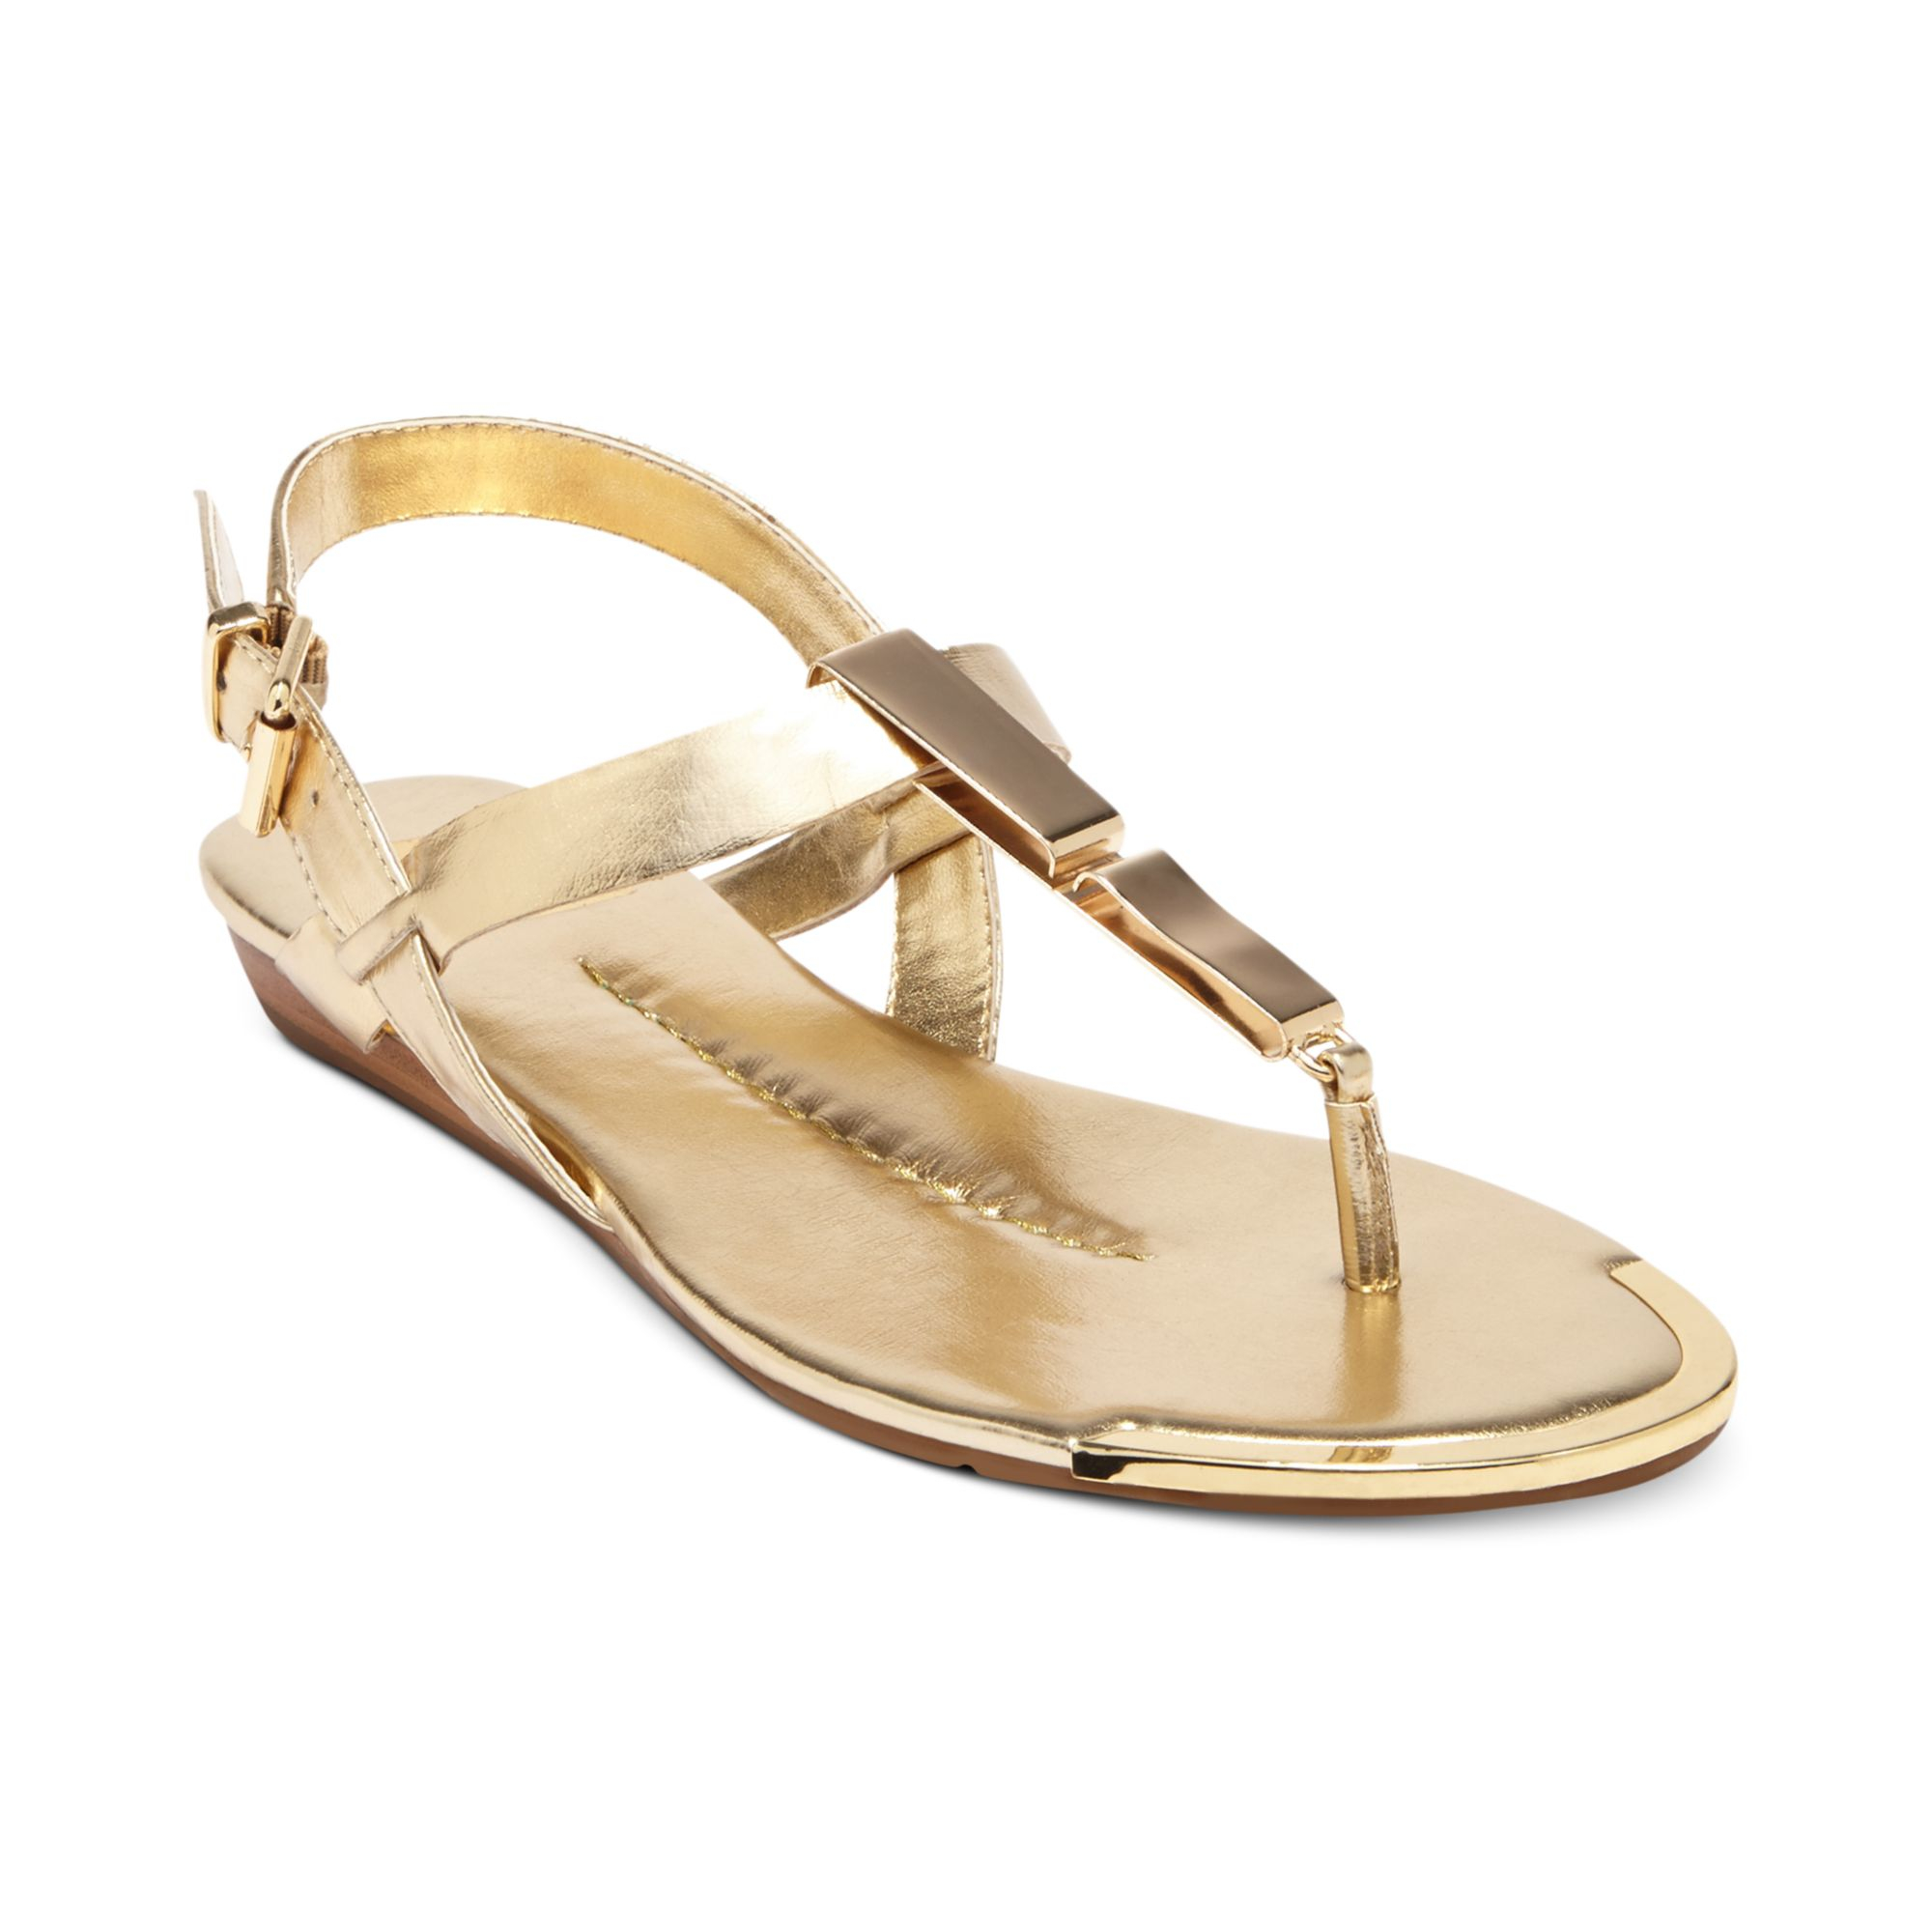 Dolce Vita Dv By Abley Flat Thong Sandals in Gold | Lyst